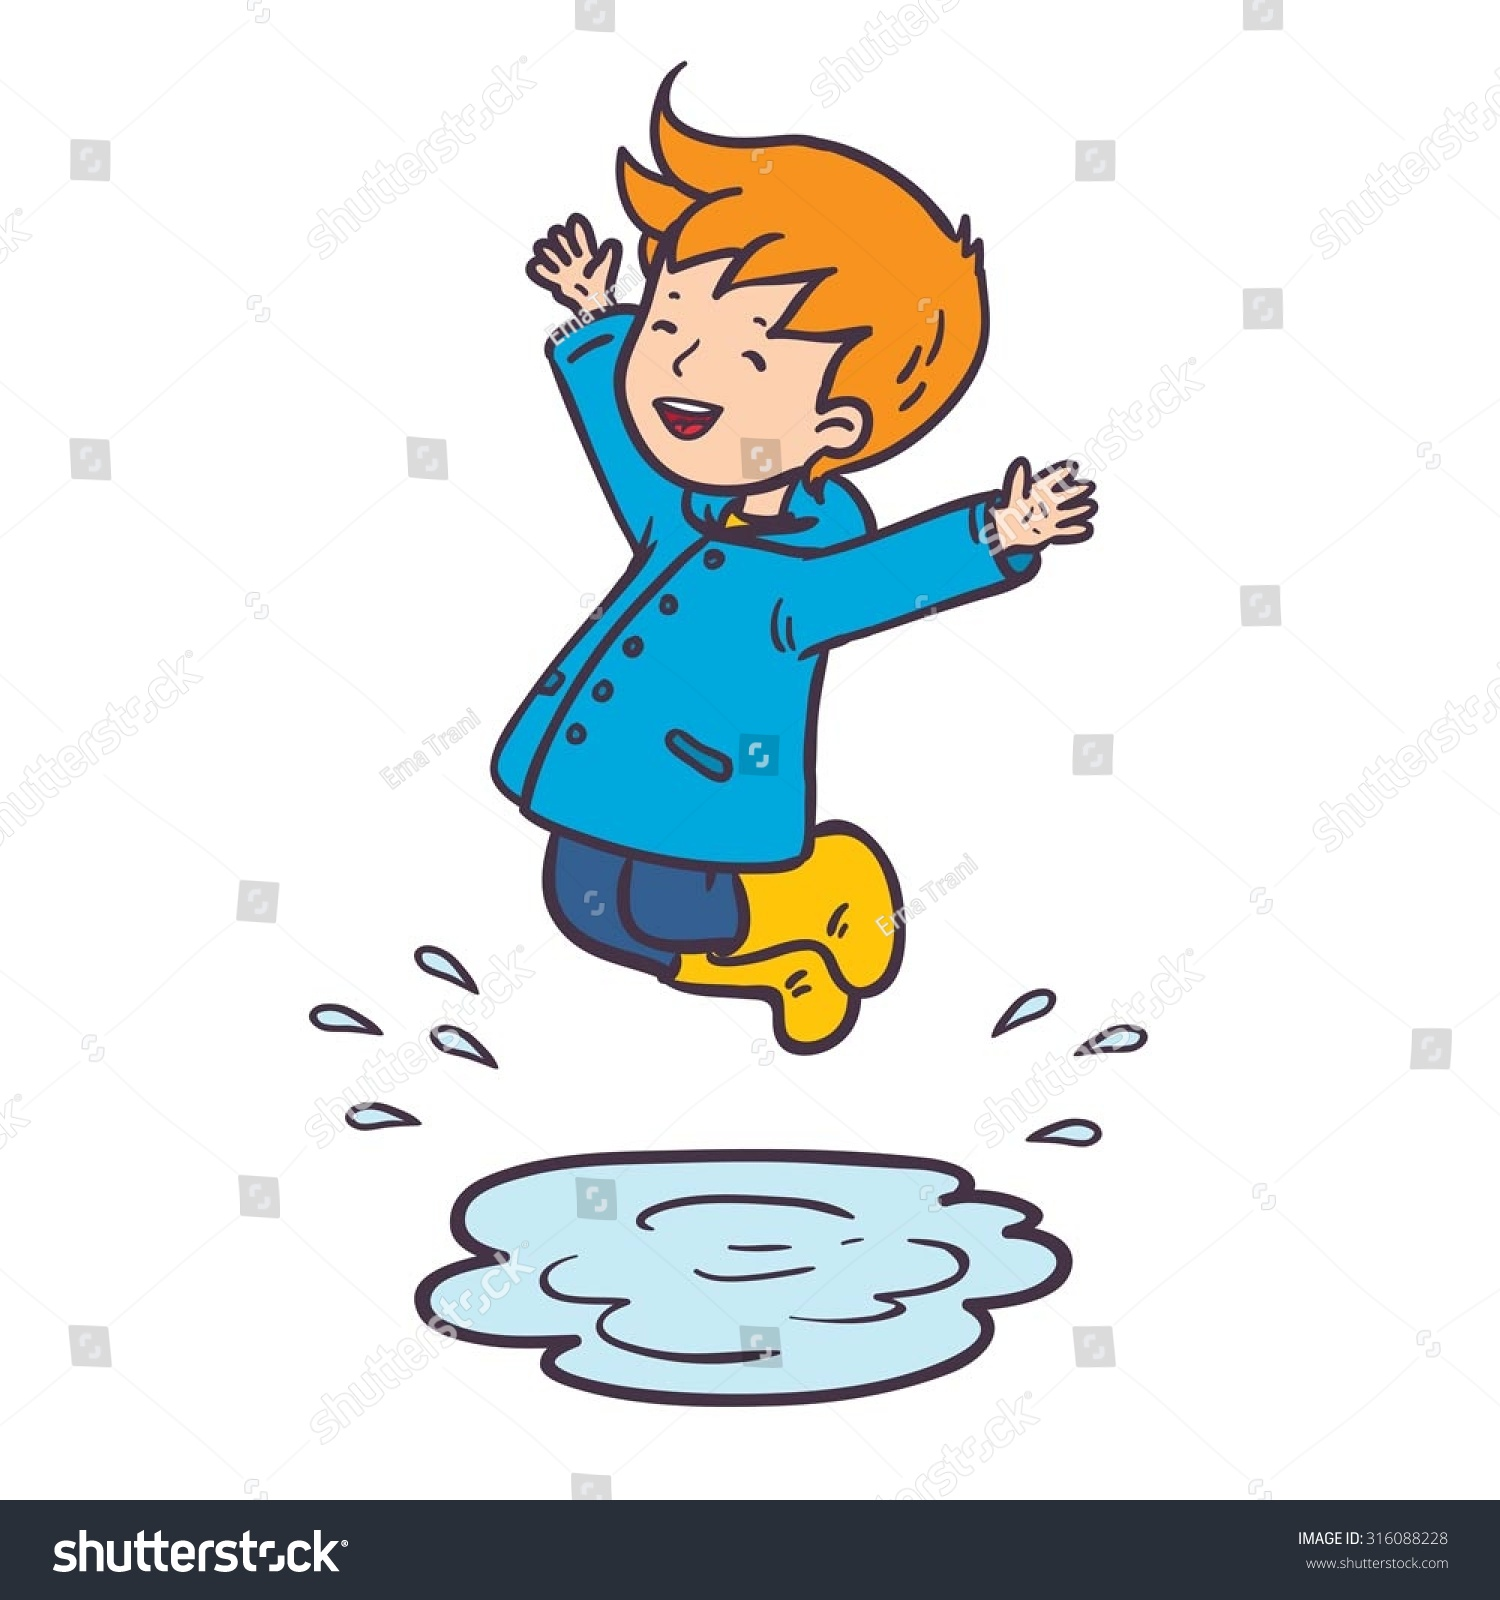 Puddle Clipart - Boy Jumping In Puddle. Vector Color Illustration - Free Clipart